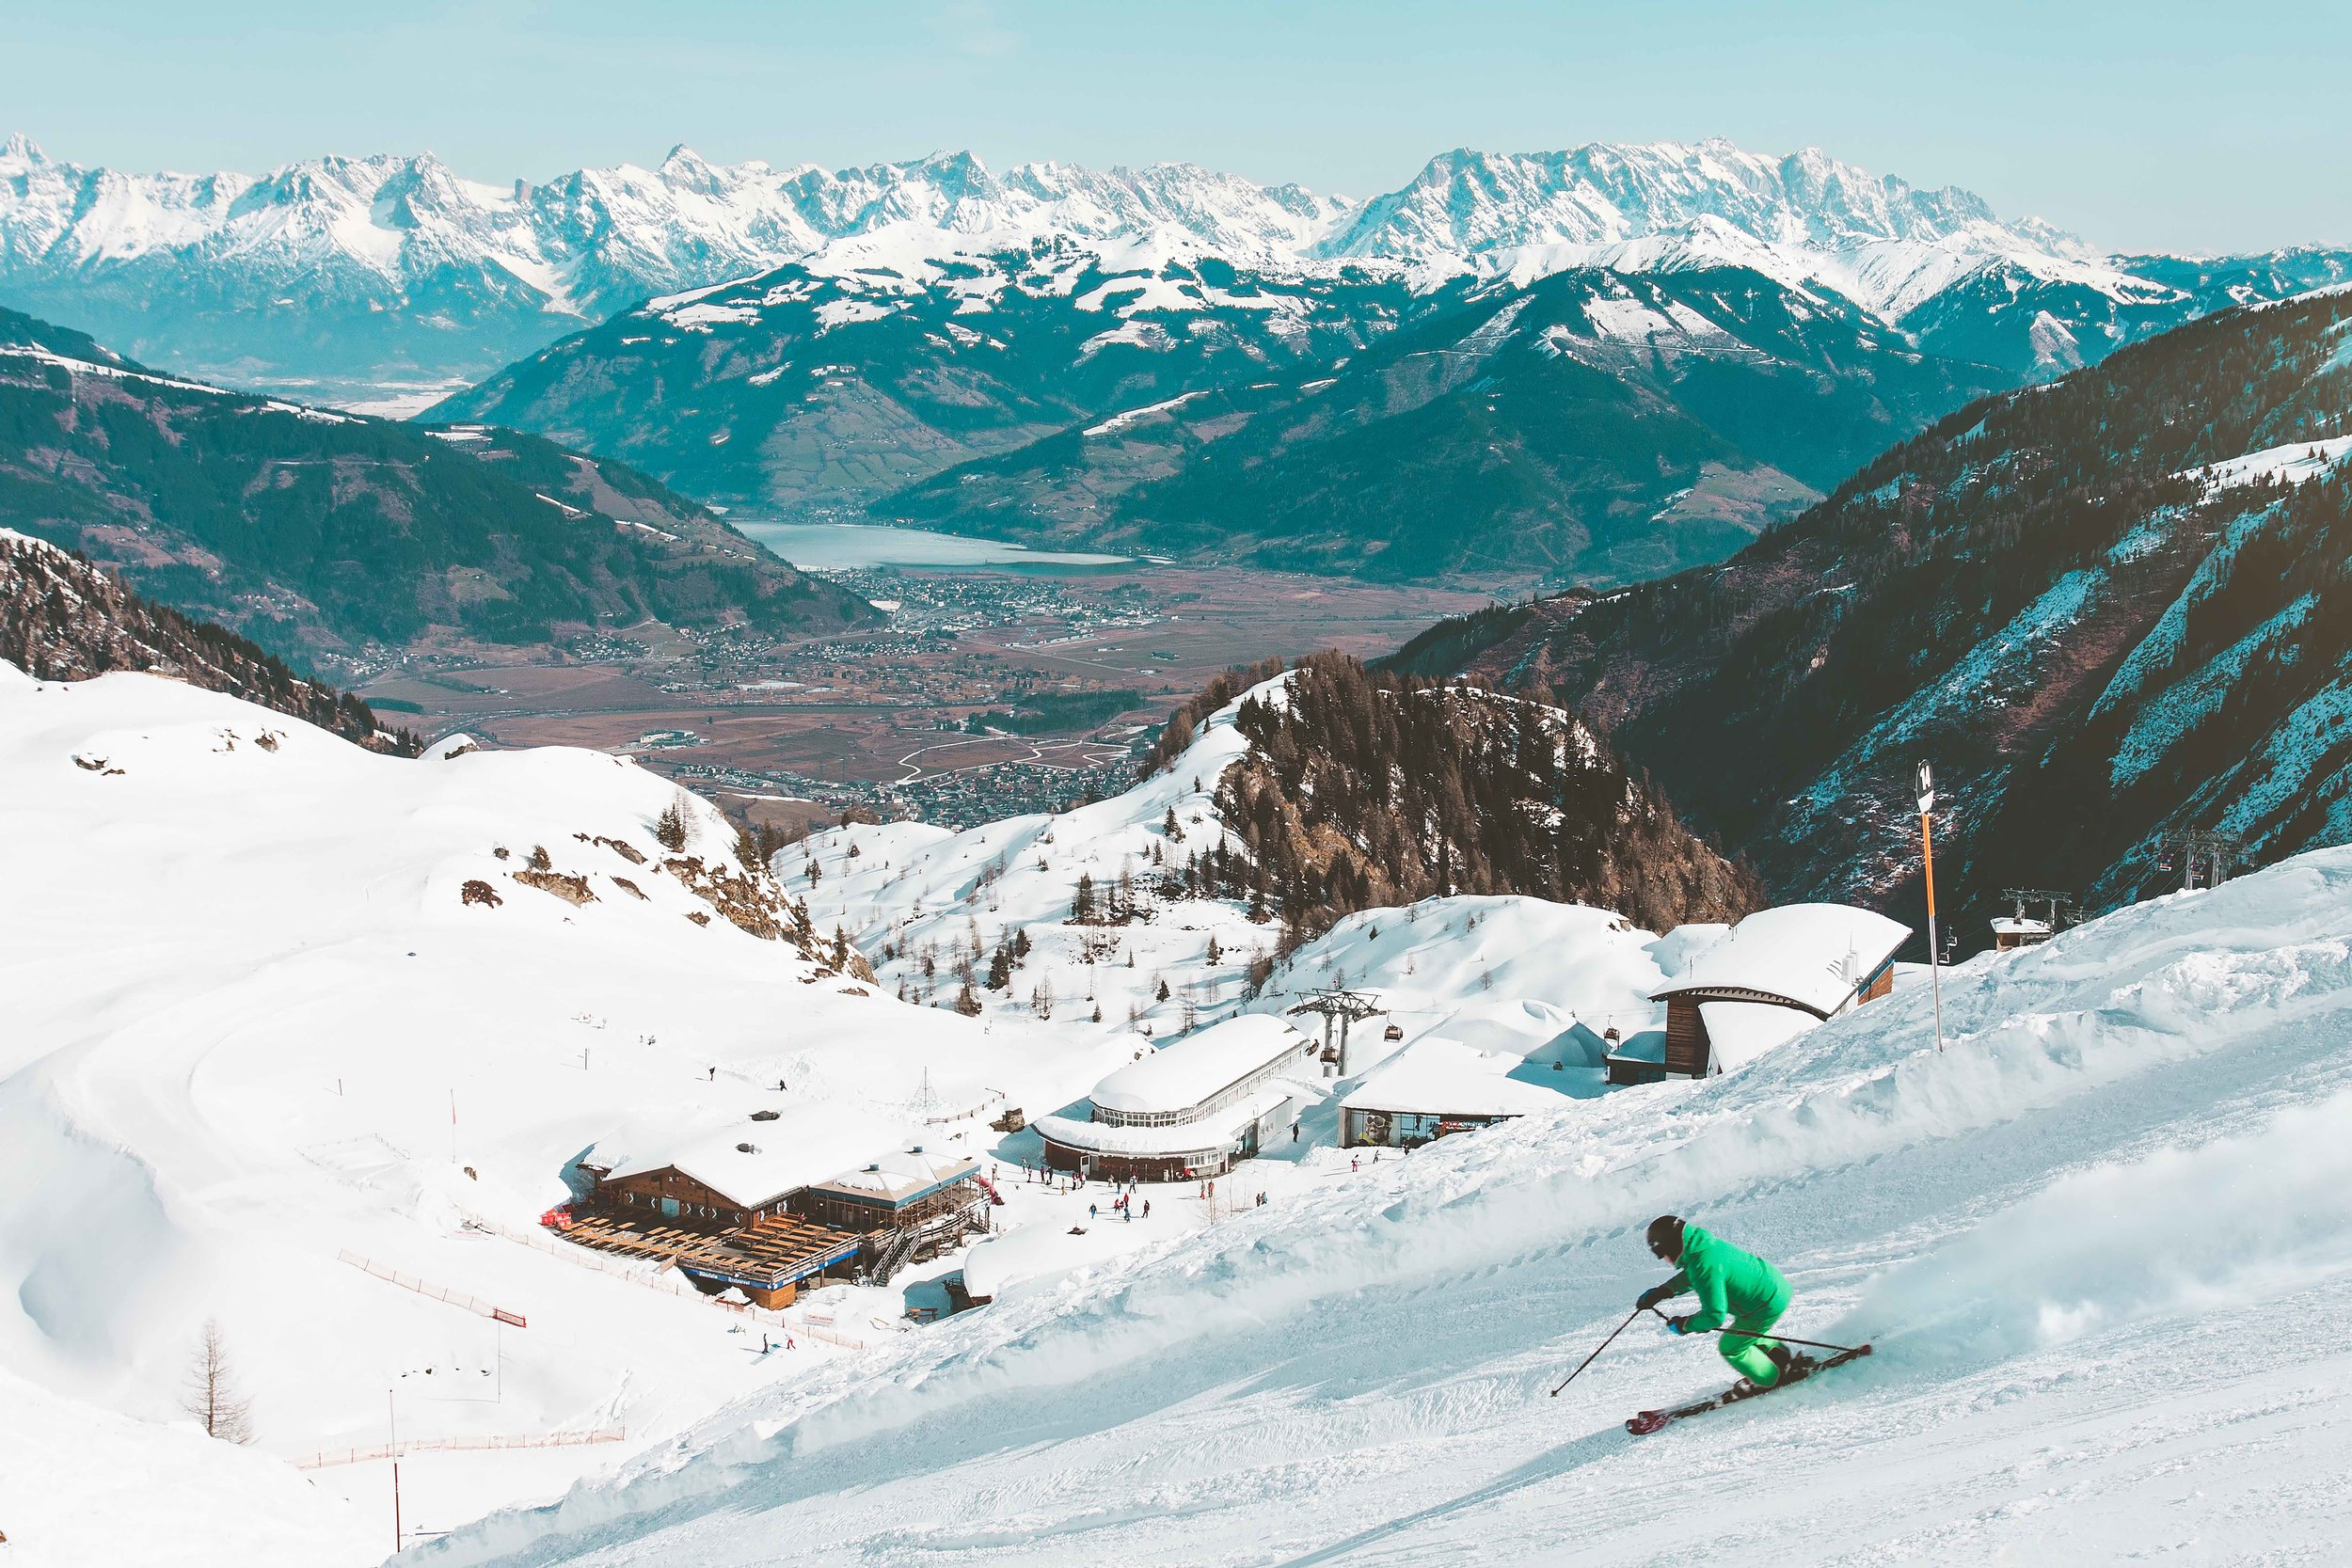 skier-seasonal-ski-resort-town